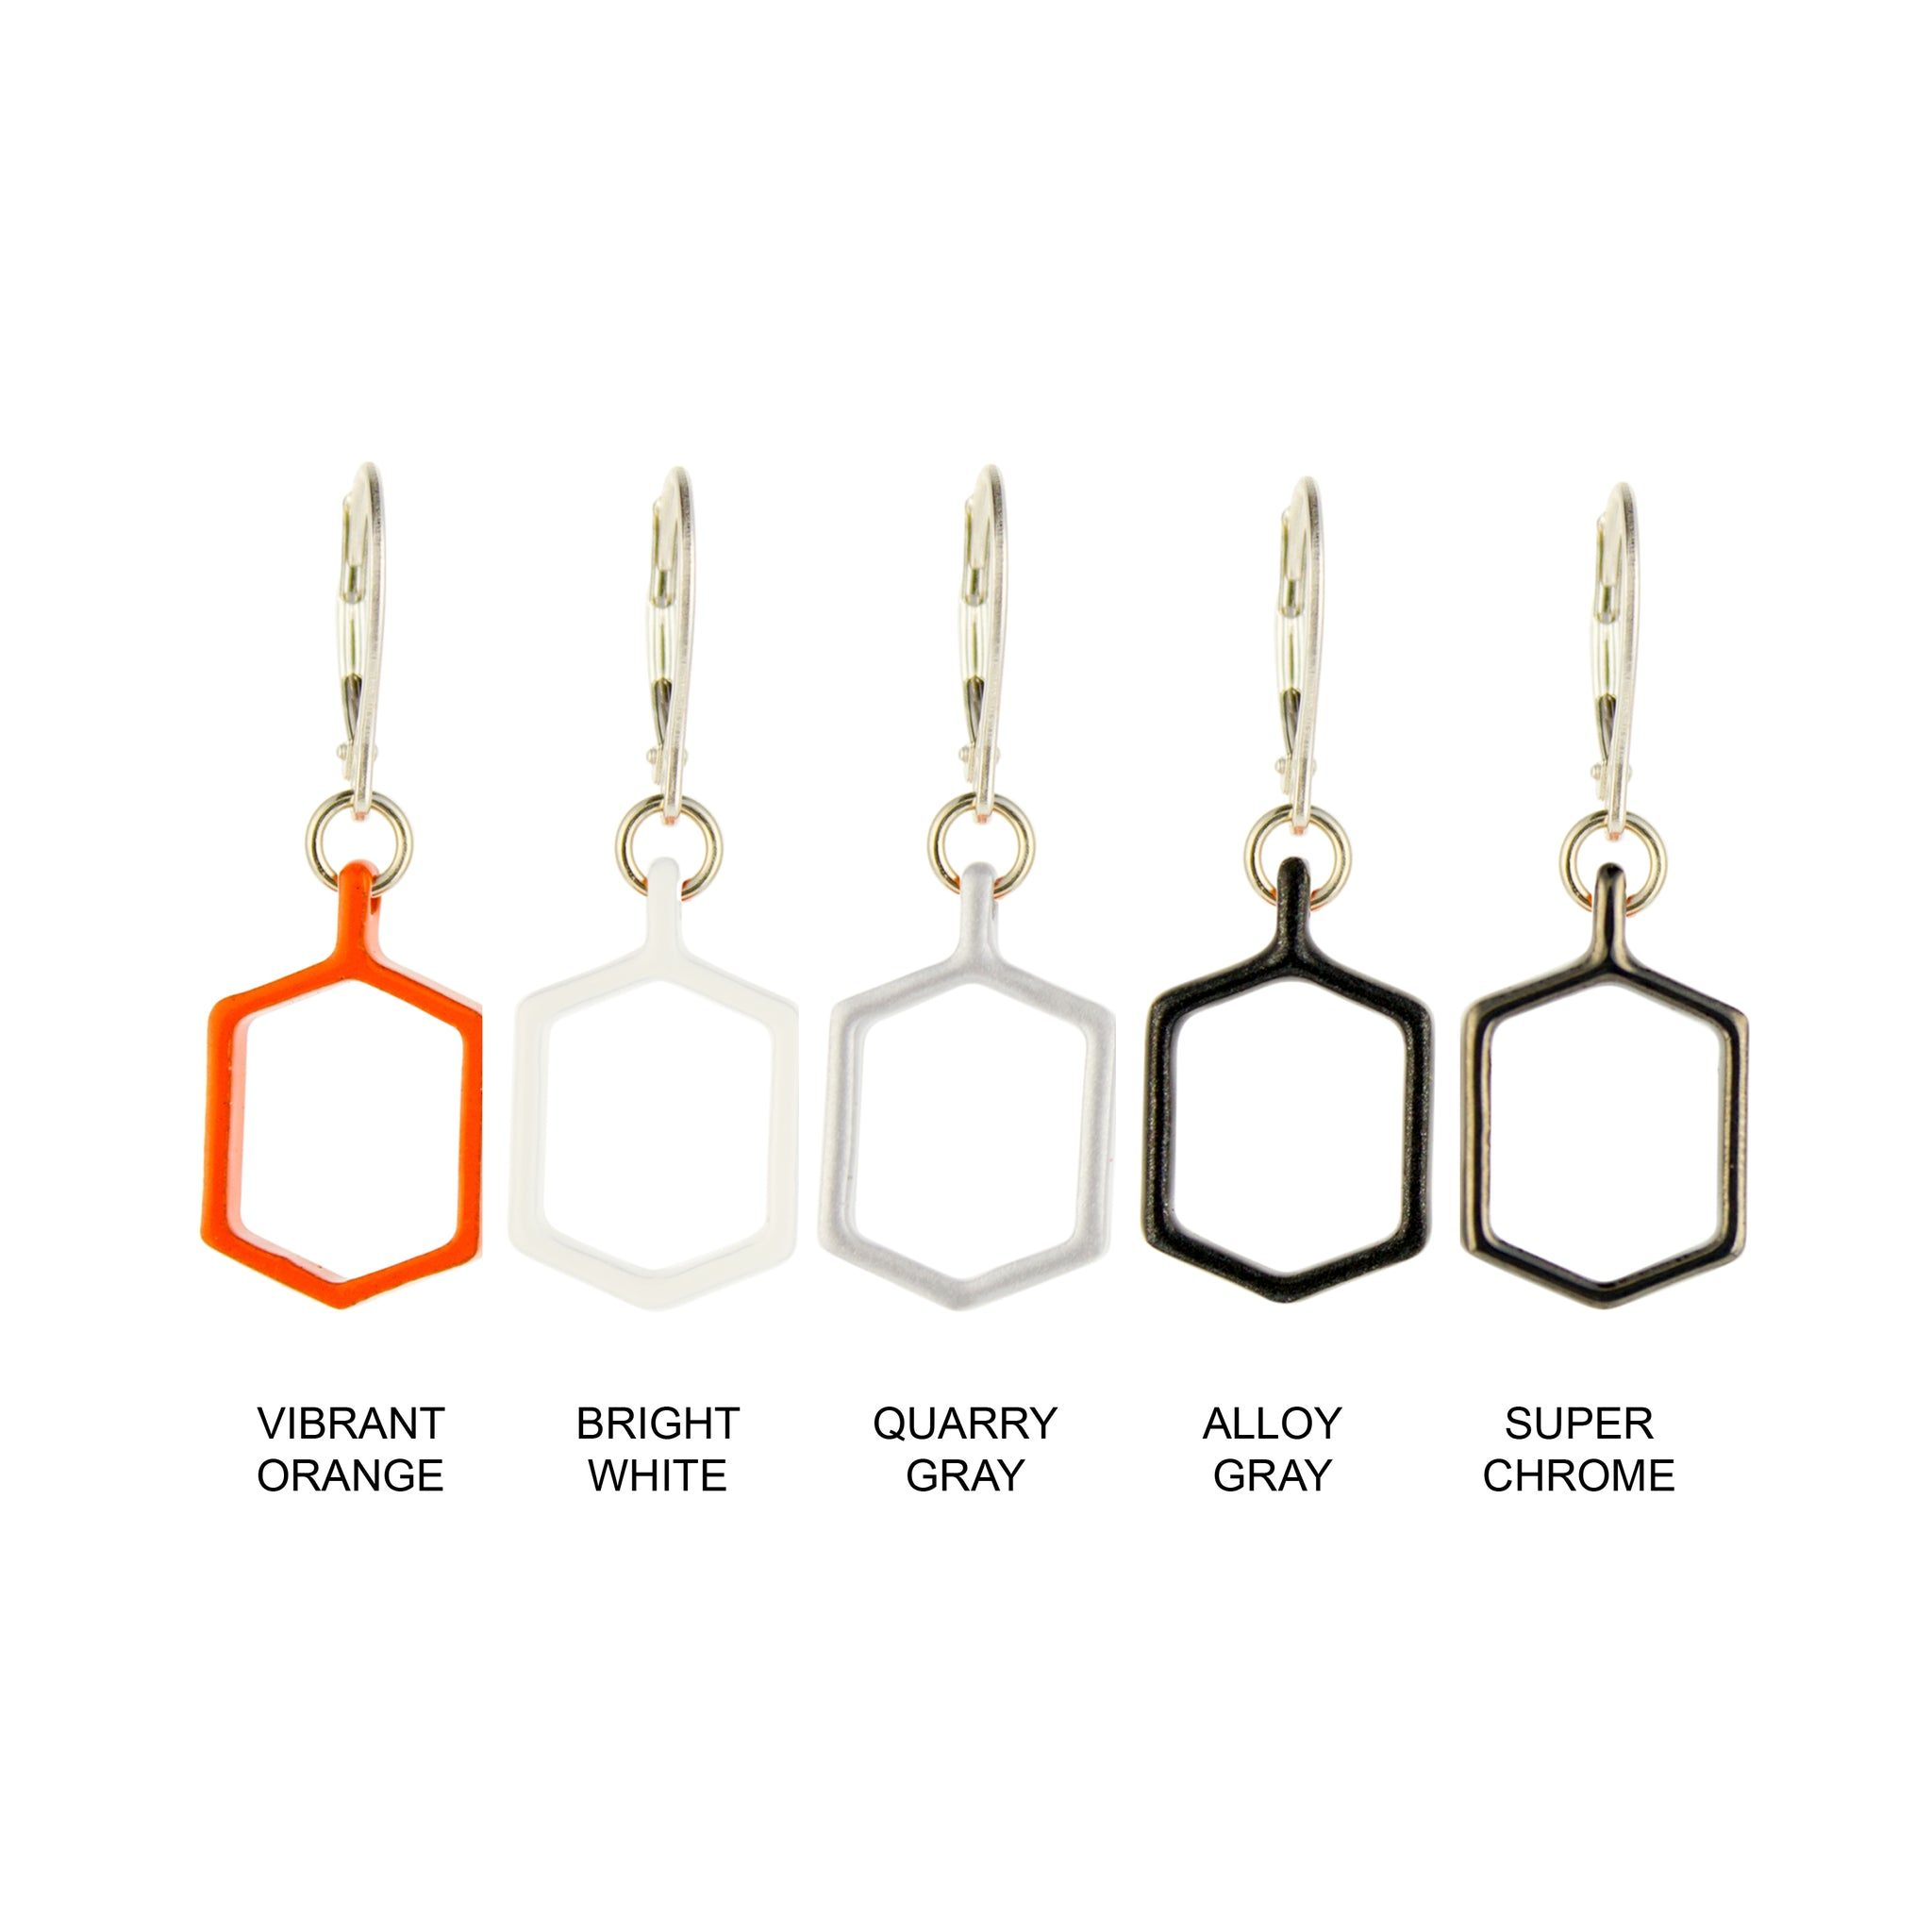 Vibrant_Orange - WITHIN x COMMON GROUND Earring Flat View Colorways